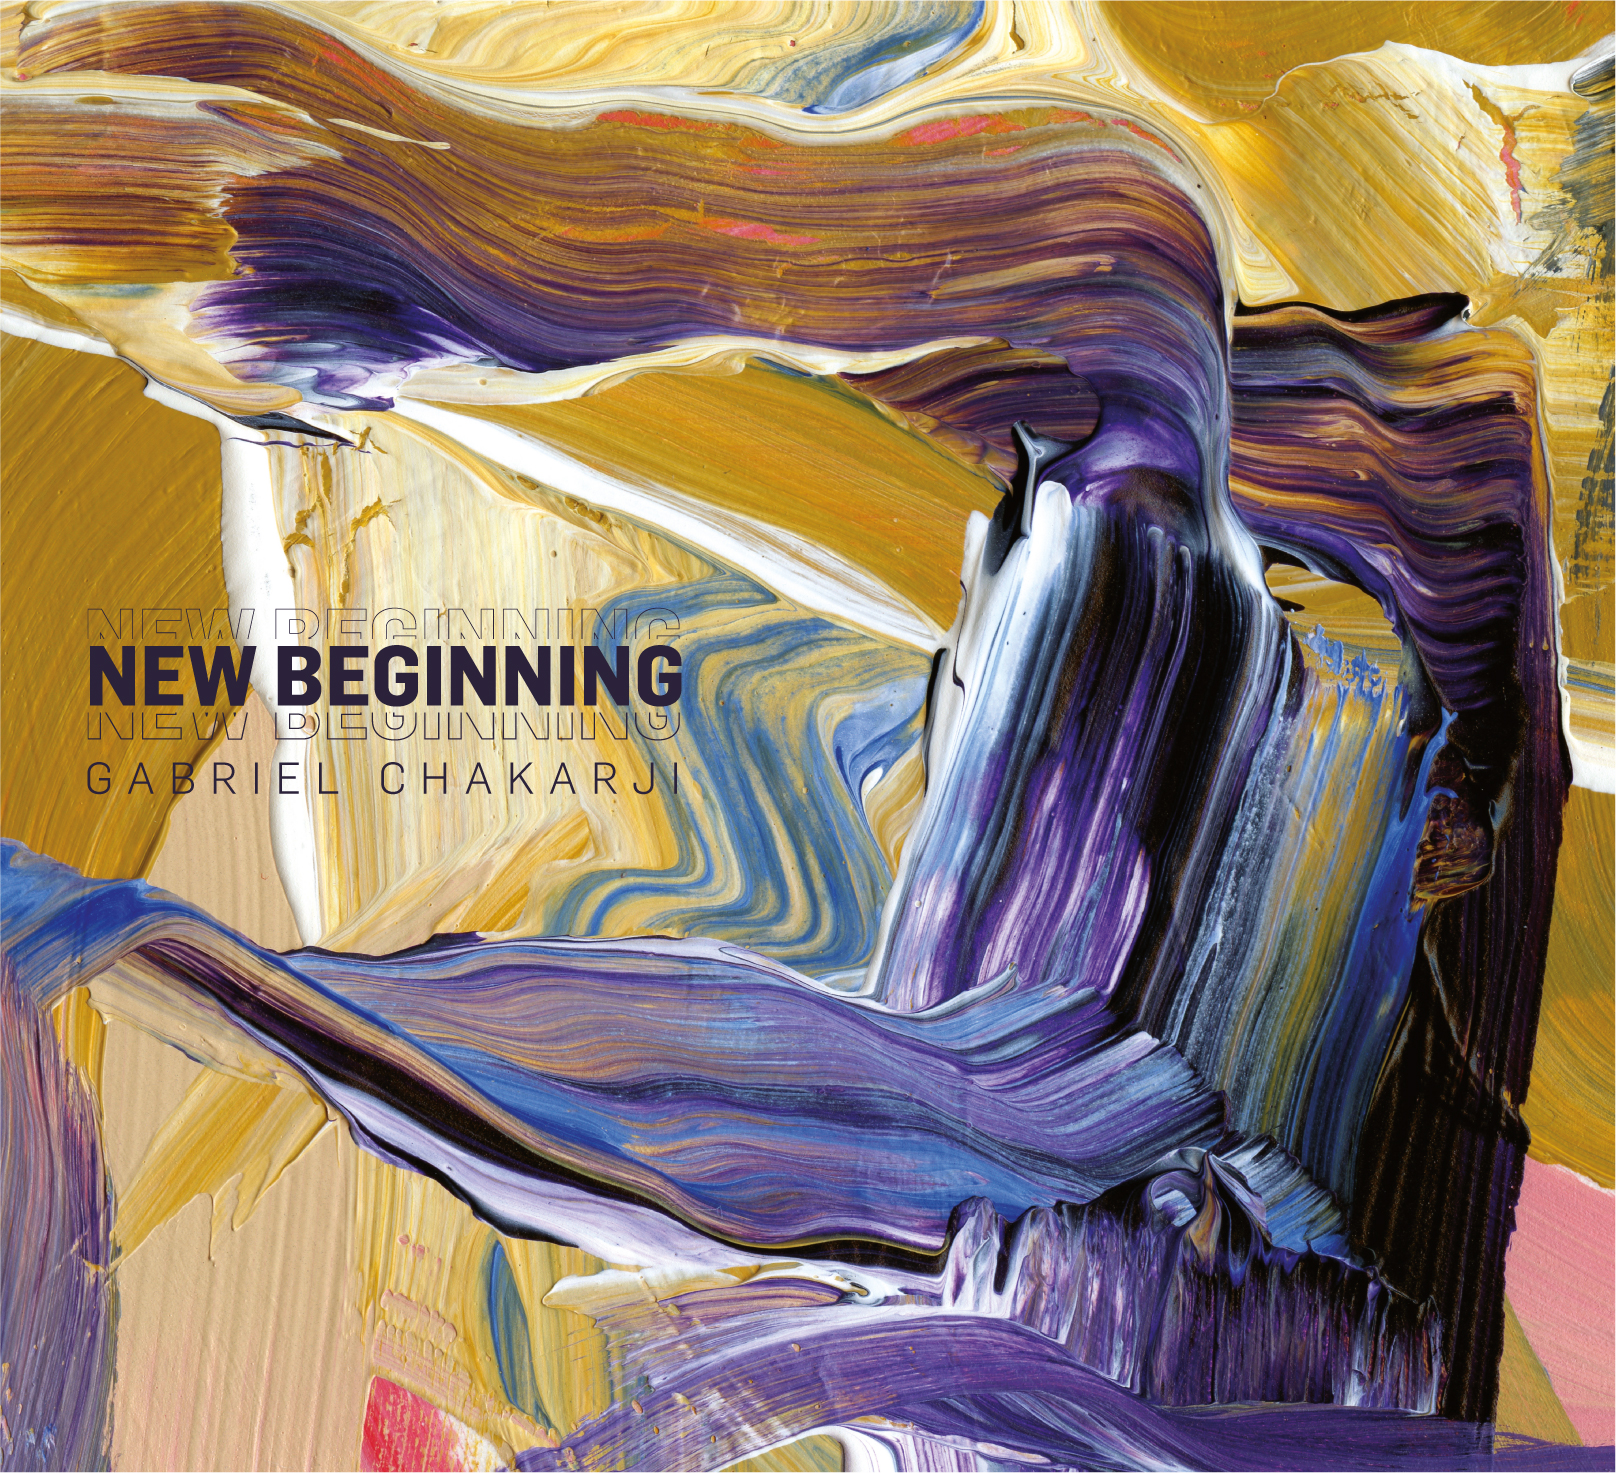 NEW RELEASE: Gabriel Chakarji's NEW BEGINNING Drops on May 1st!